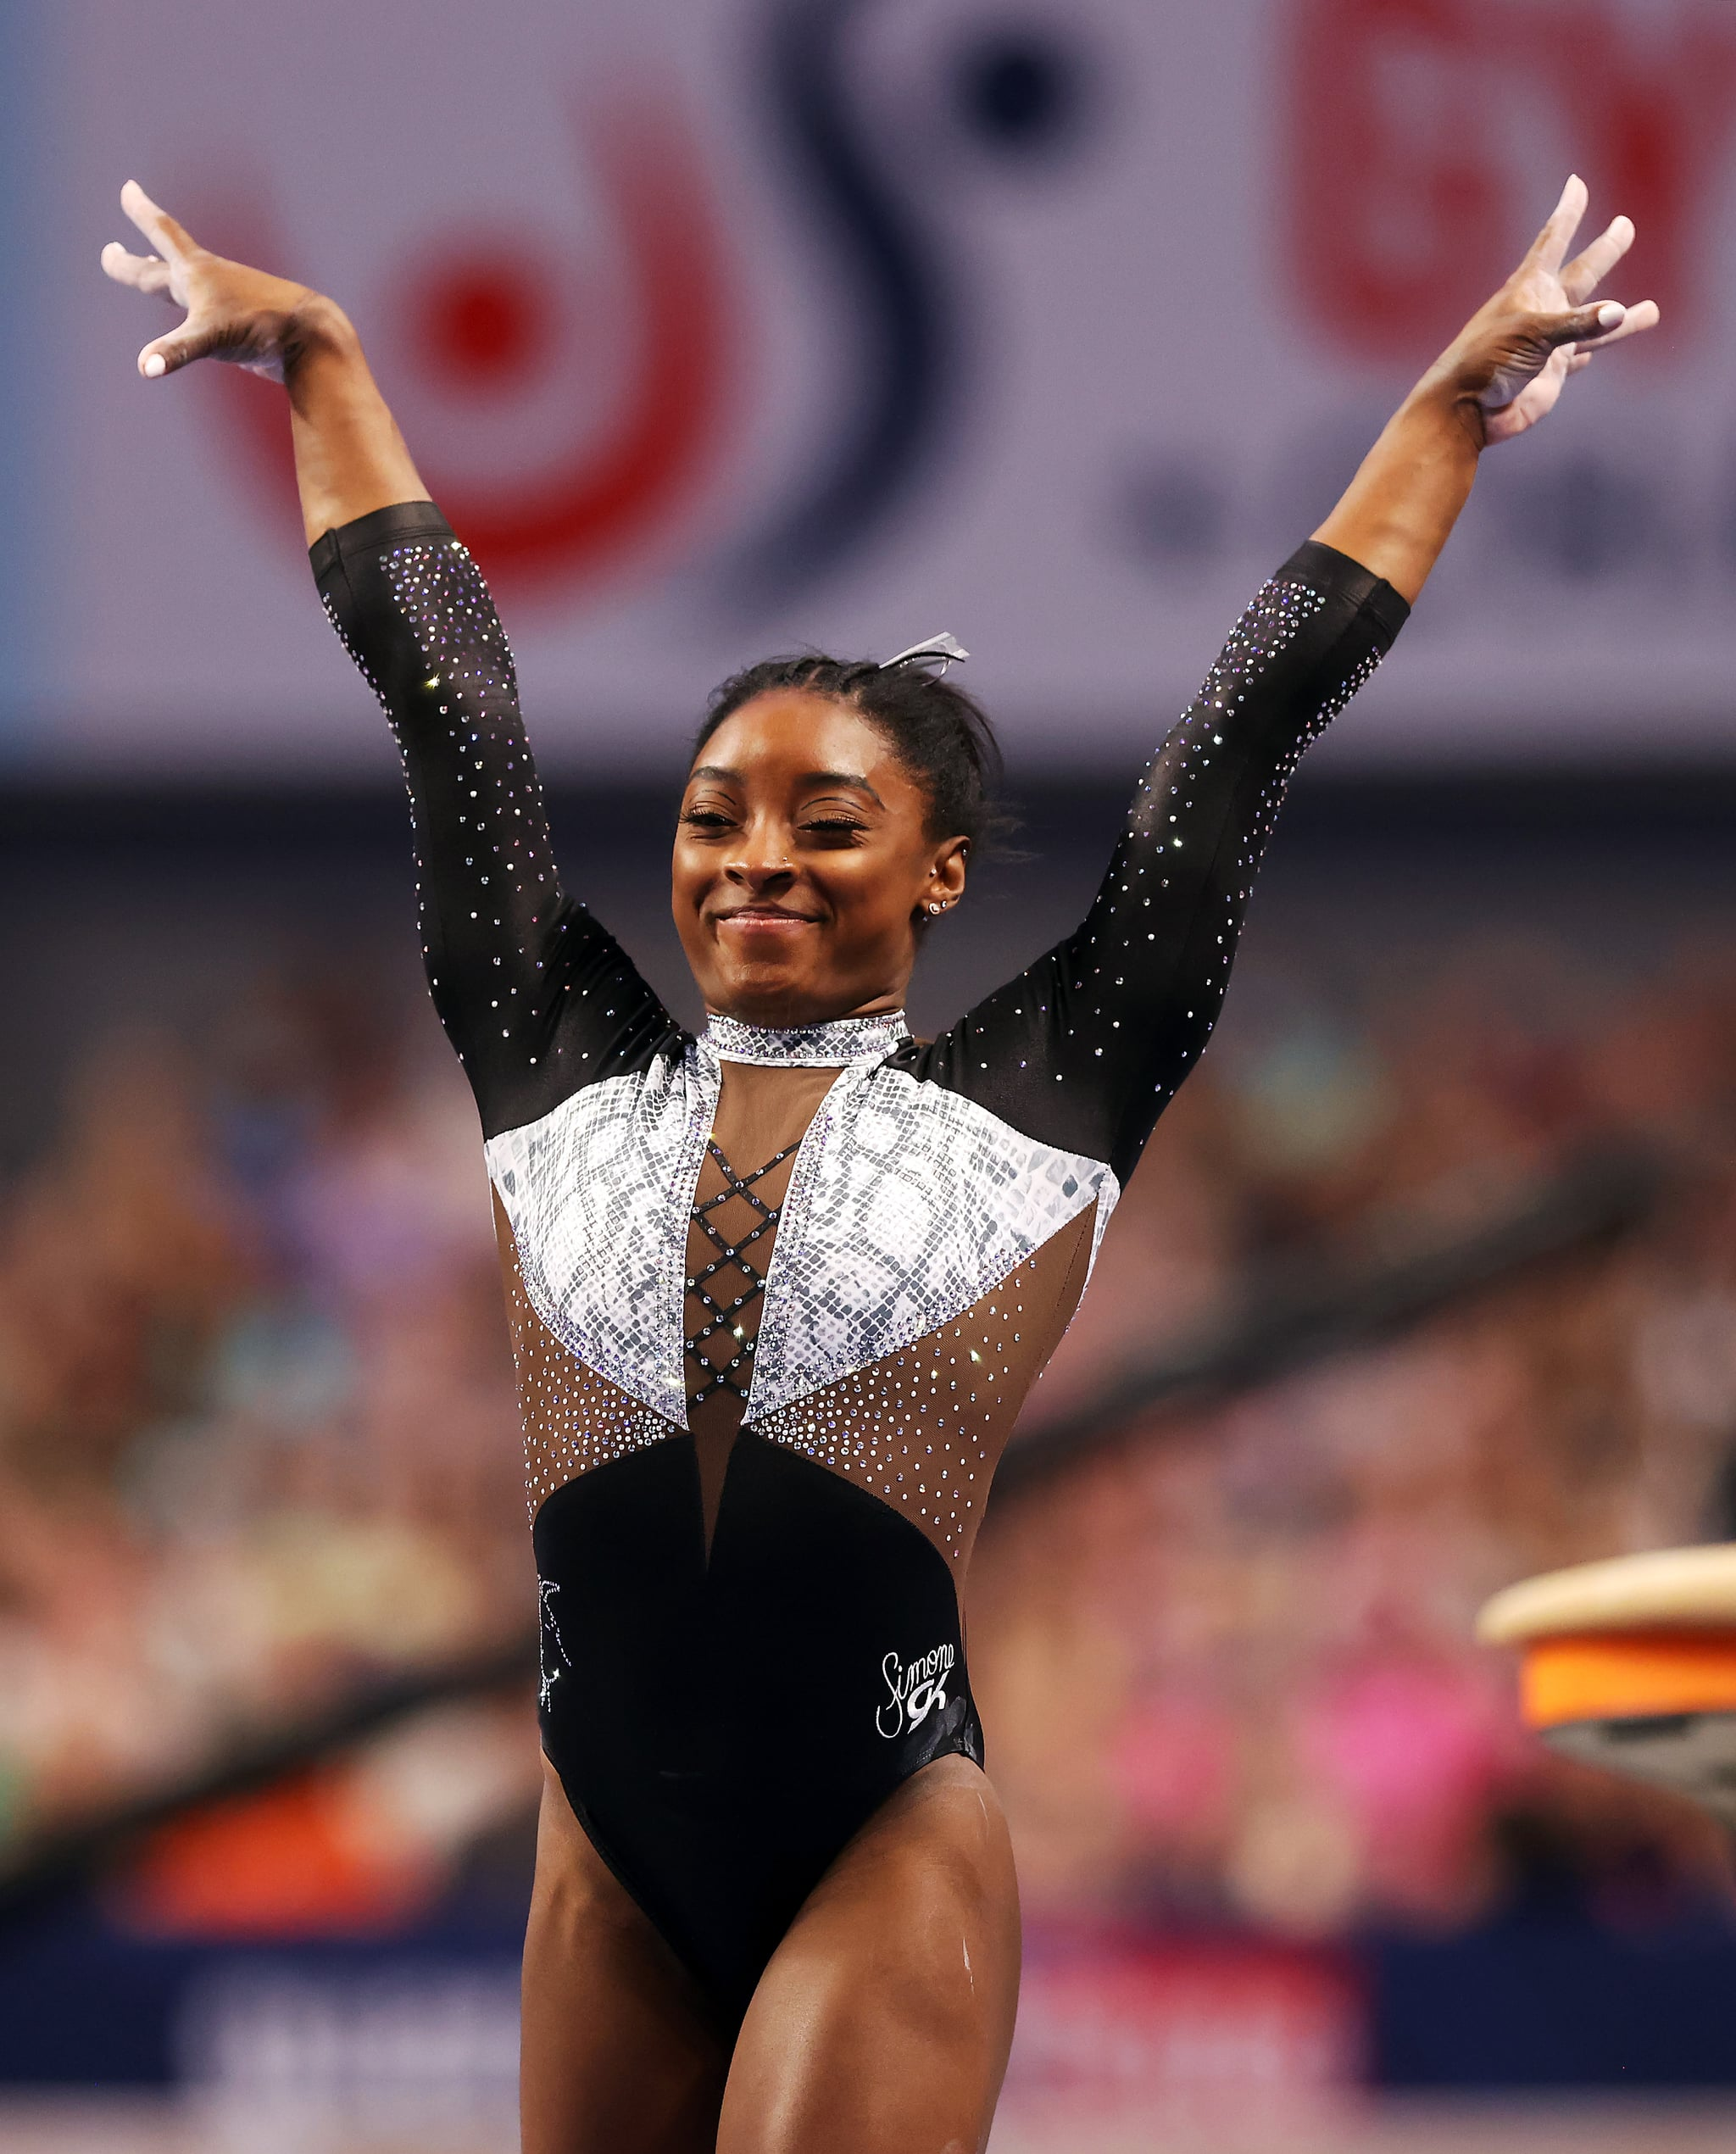 FORT WORTH, TEXAS - JUNE 06:  Simone Biles reacts after compteting on the vault during the Senior Women's competition of the U.S. Gymnastics Championships at Dickies Arena on June 06, 2021 in Fort Worth, Texas. (Photo by Jamie Squire/Getty Images)